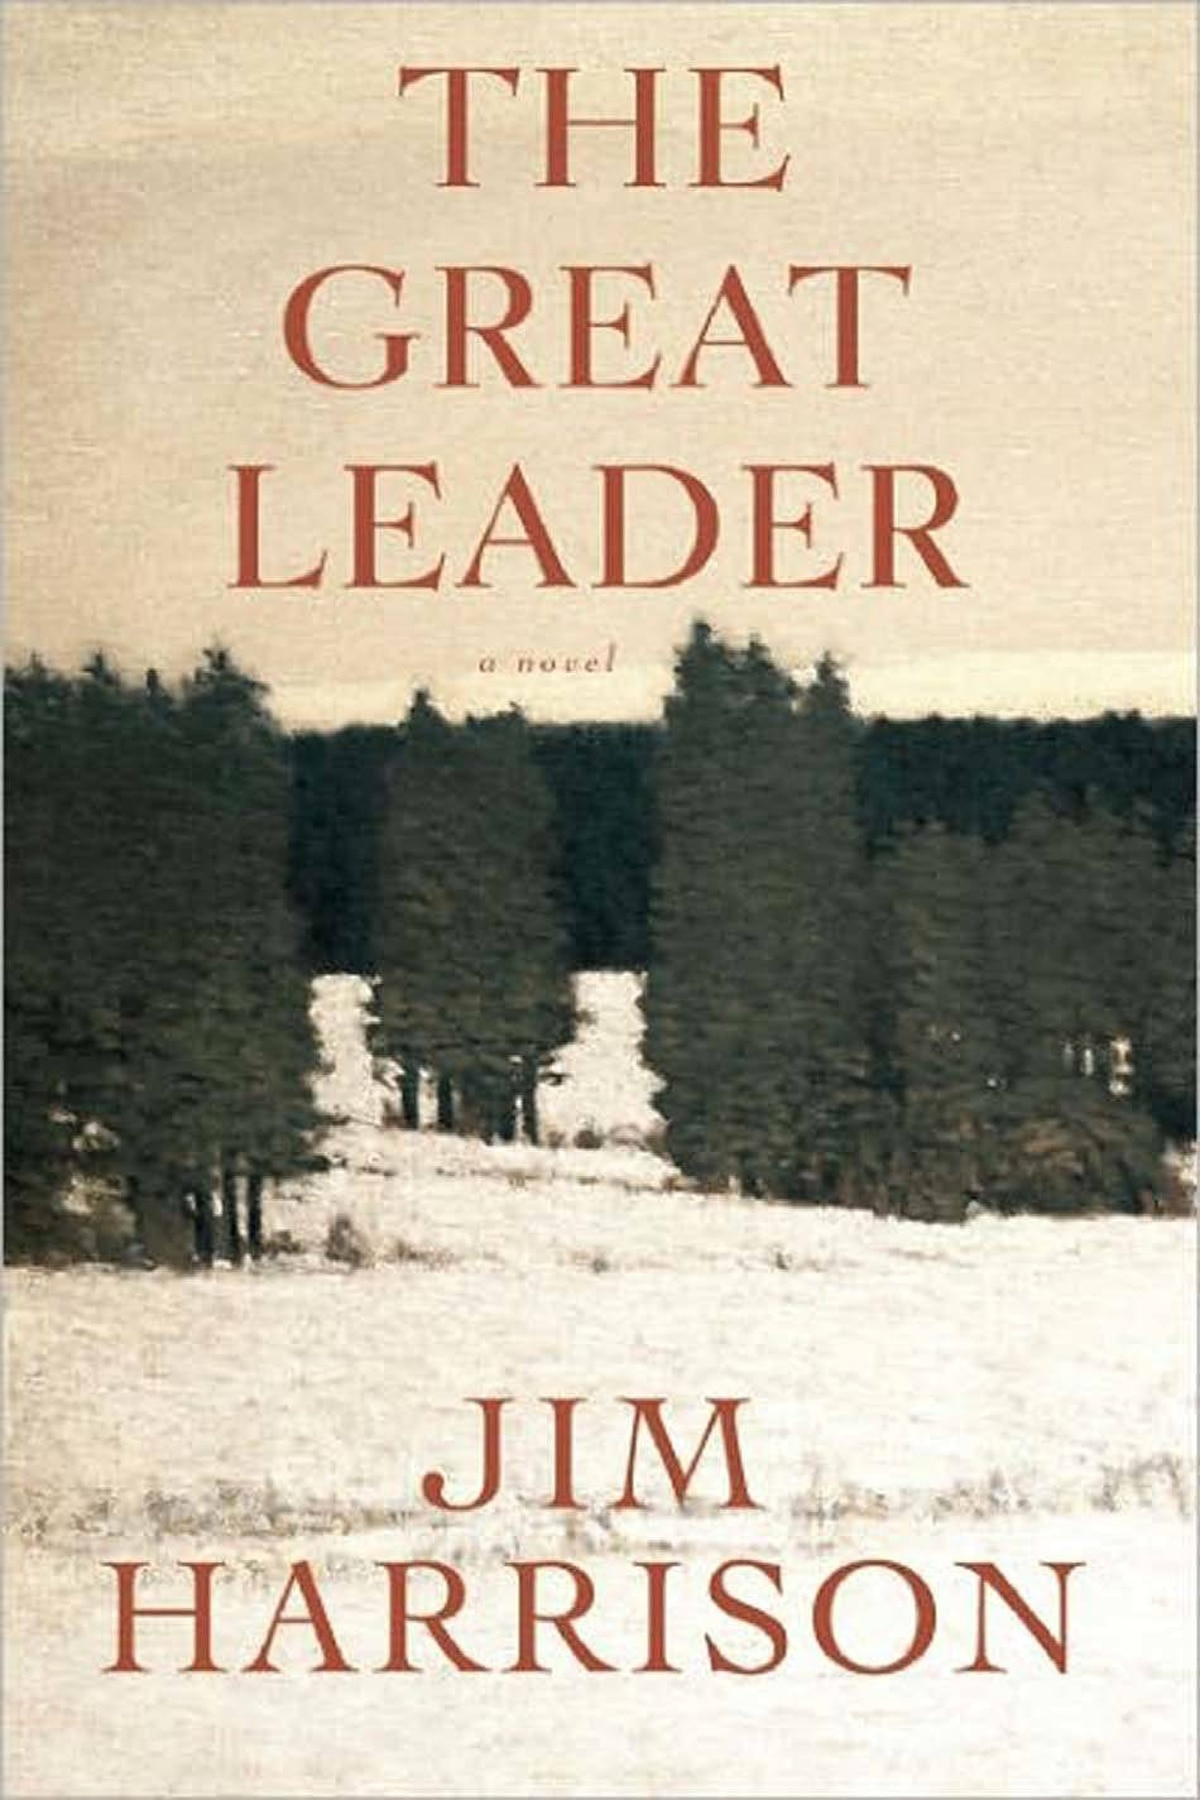 THE GREAT LEADER A Faux Mystery By Jim Harrison (Anansi) Retired Detective Sunderson dreams of finding enough evidence to imprison Dwight/King David, the Great Leader of a cult that offers pseudo-native-American spiritual enlightenment in return for thousands of dollars and underage sexual partners. Sunderson is aided by 16-year-old Goth girl Mona. An enthralling, exhilarating, provocative novel. – T.F. Rigelhof